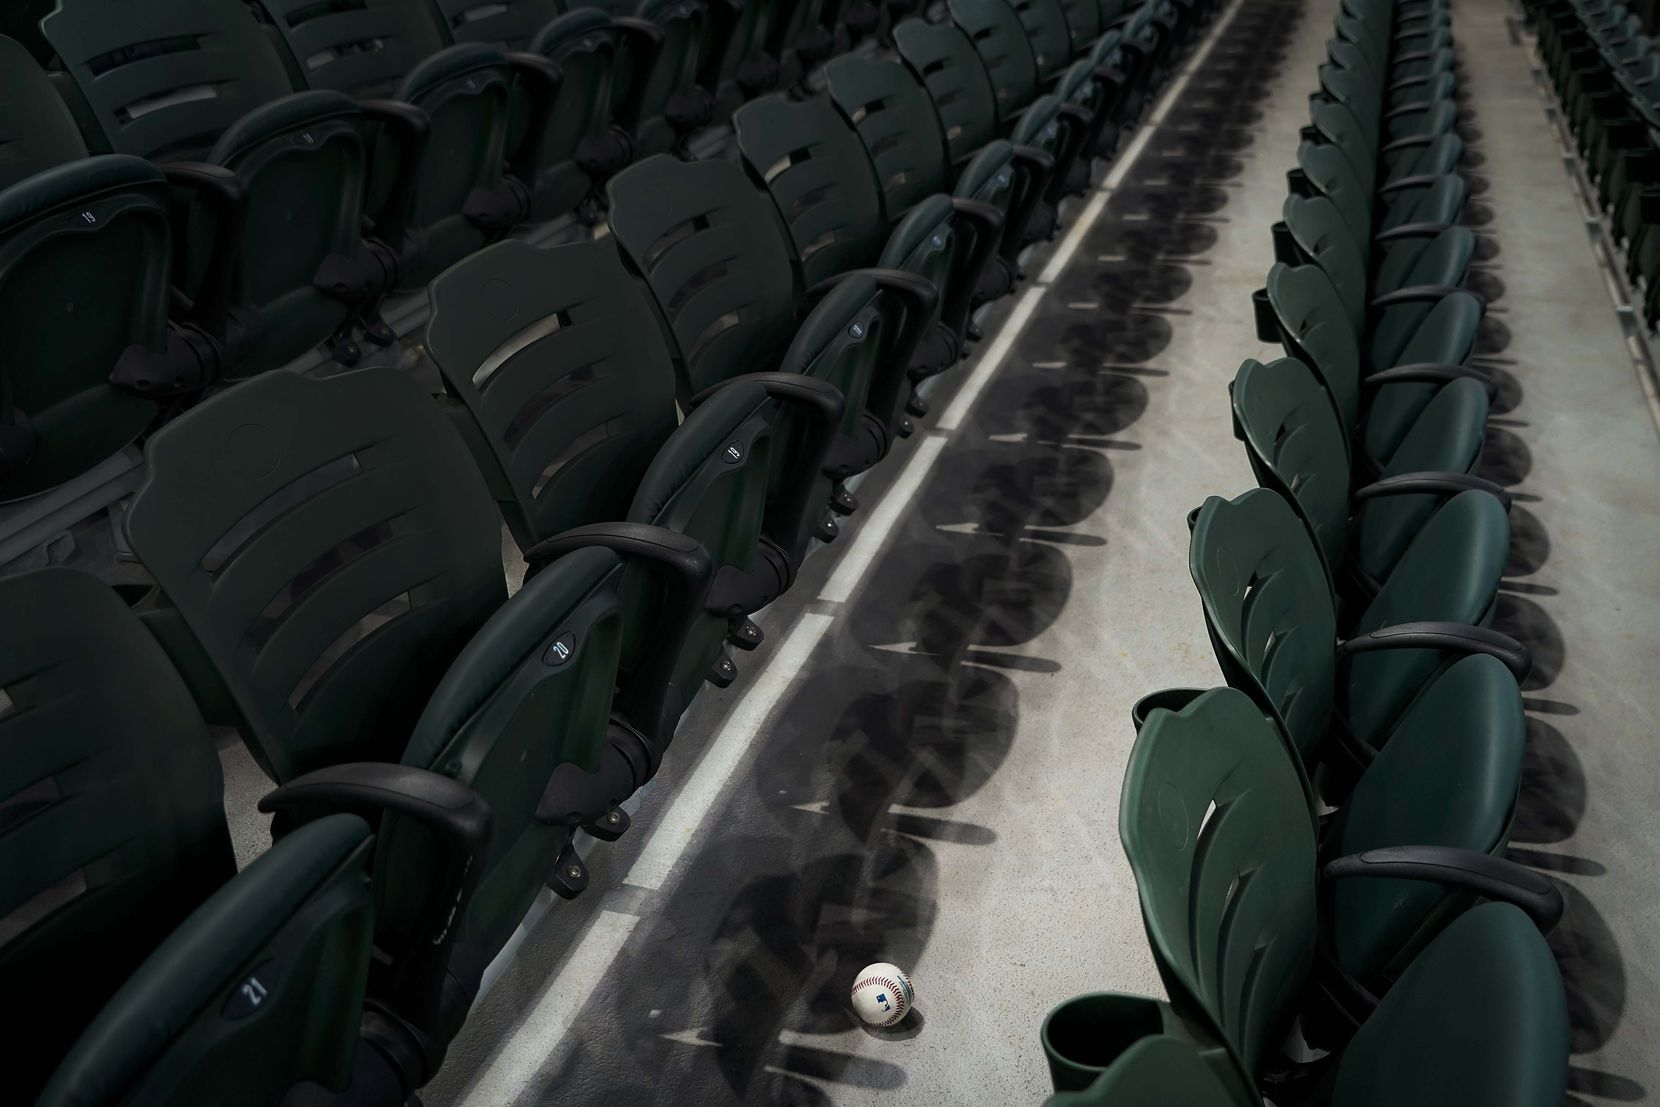 A baseball rests among empty rows of seats after being fouled off by a batter in an intrasquad game during Texas Rangers Summer Camp at Globe Life Field on Thursday, July 16, 2020.